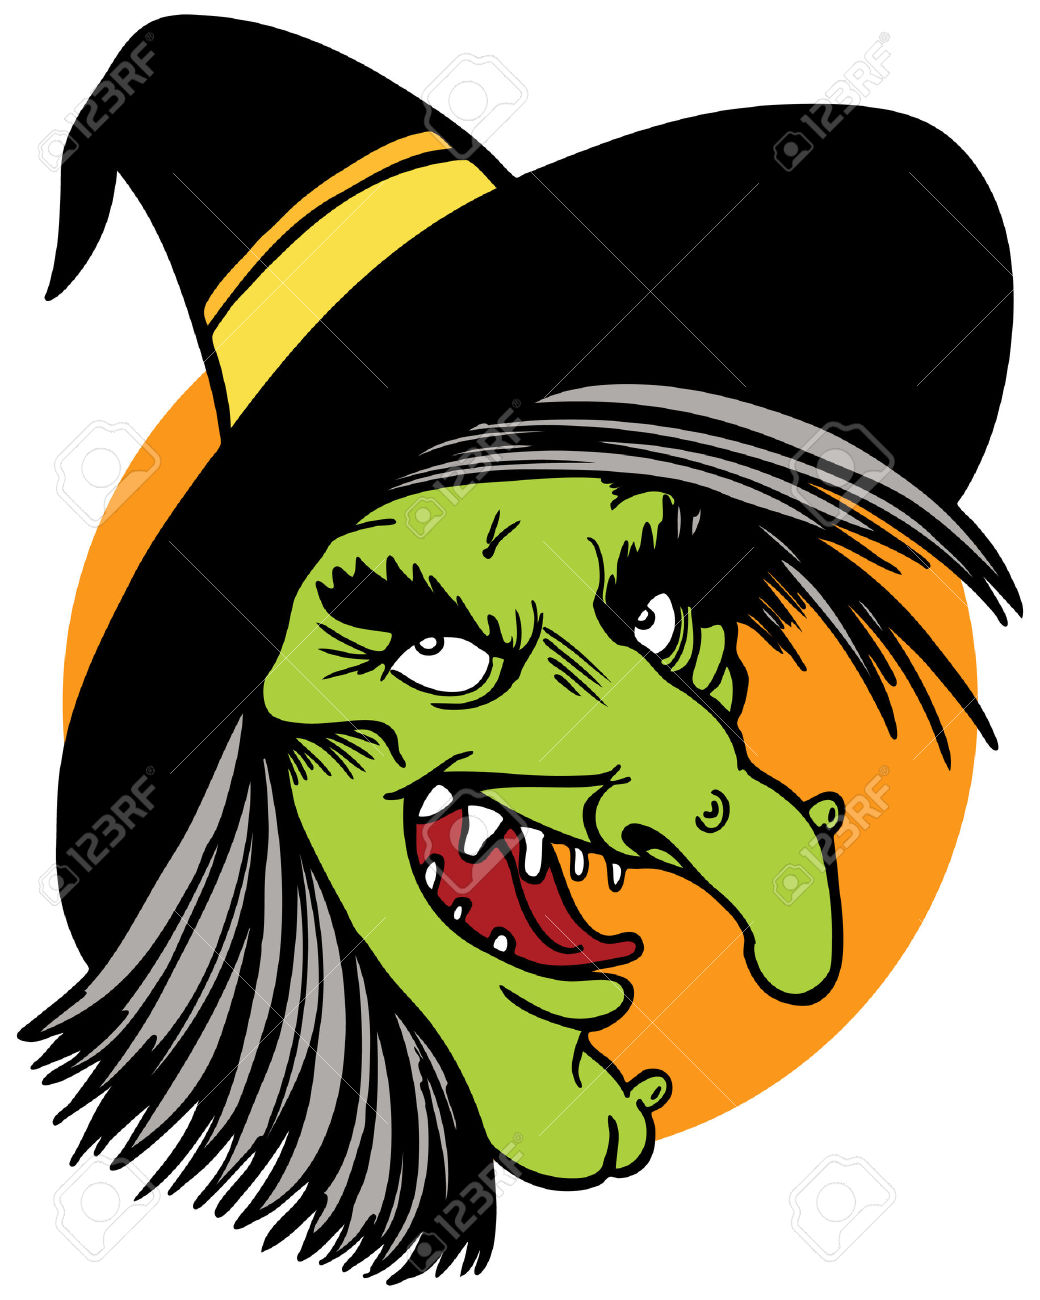 Free Cartoon Witch Cliparts, Download Free Clip Art, Free.